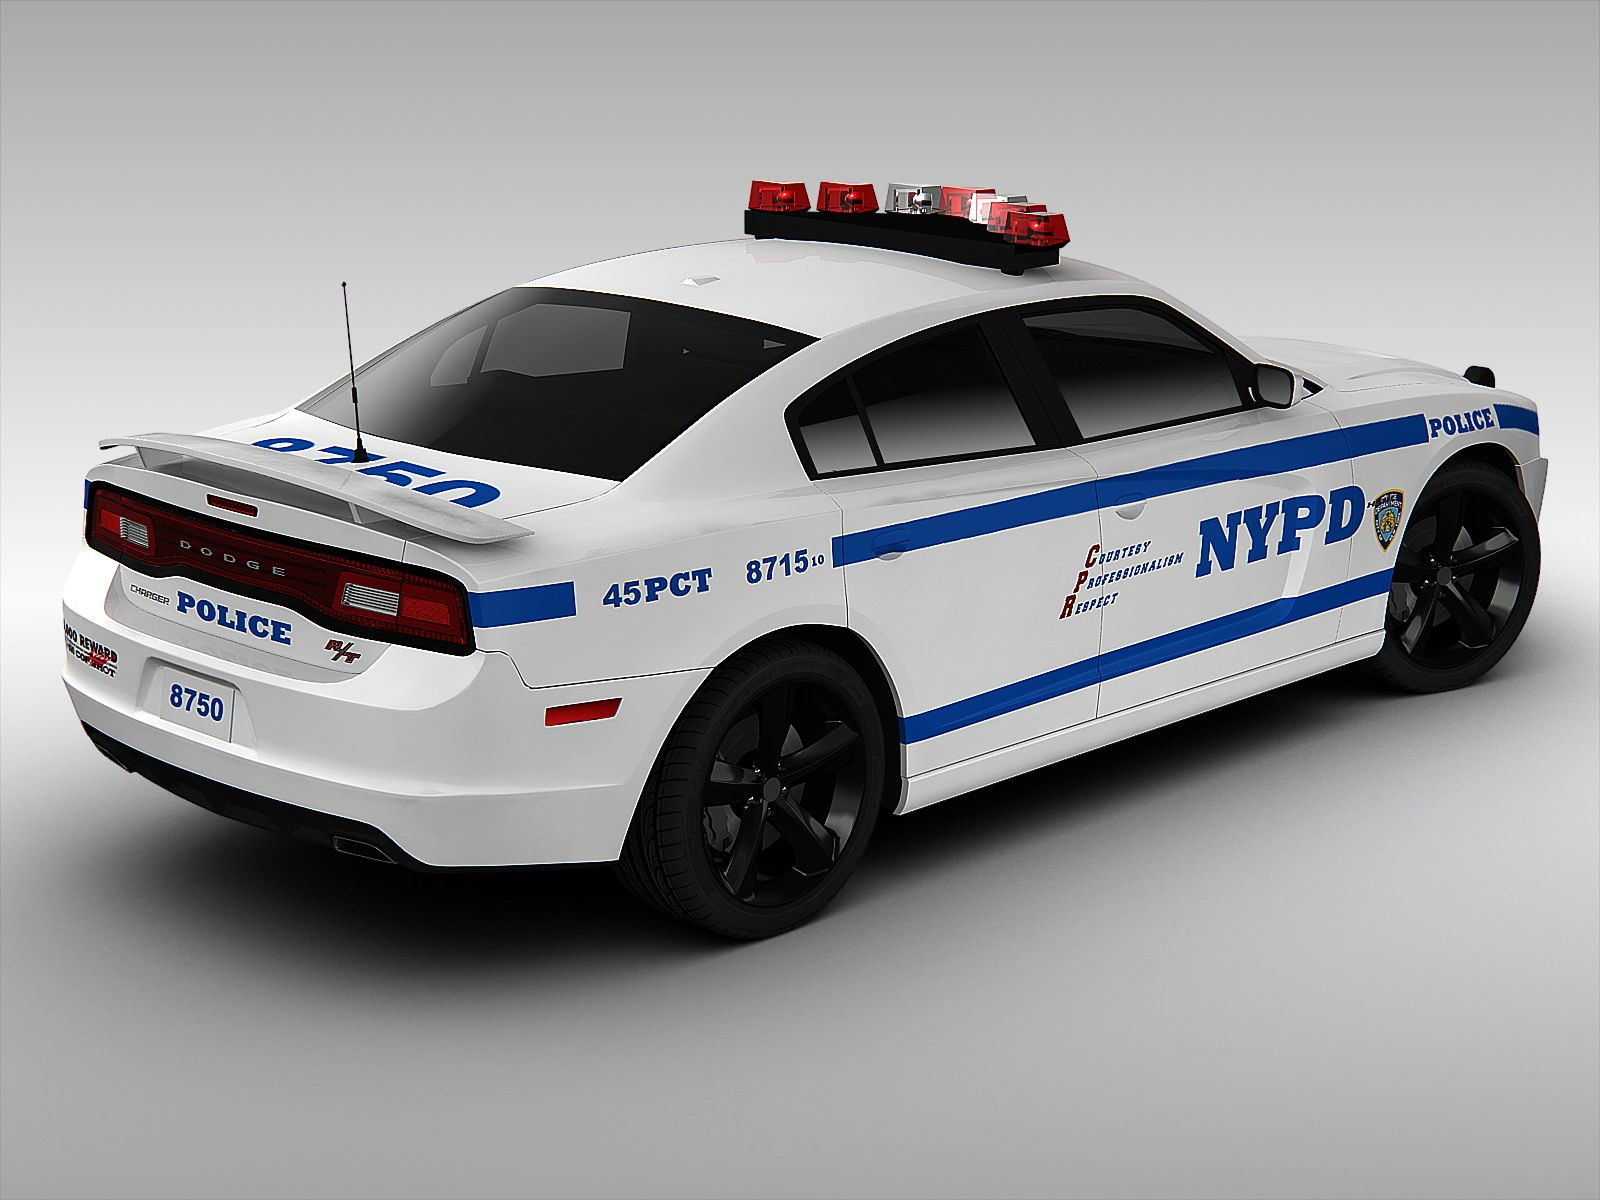 Dodge Charger NYPD Police Car 2013 | 3D model | Police ...